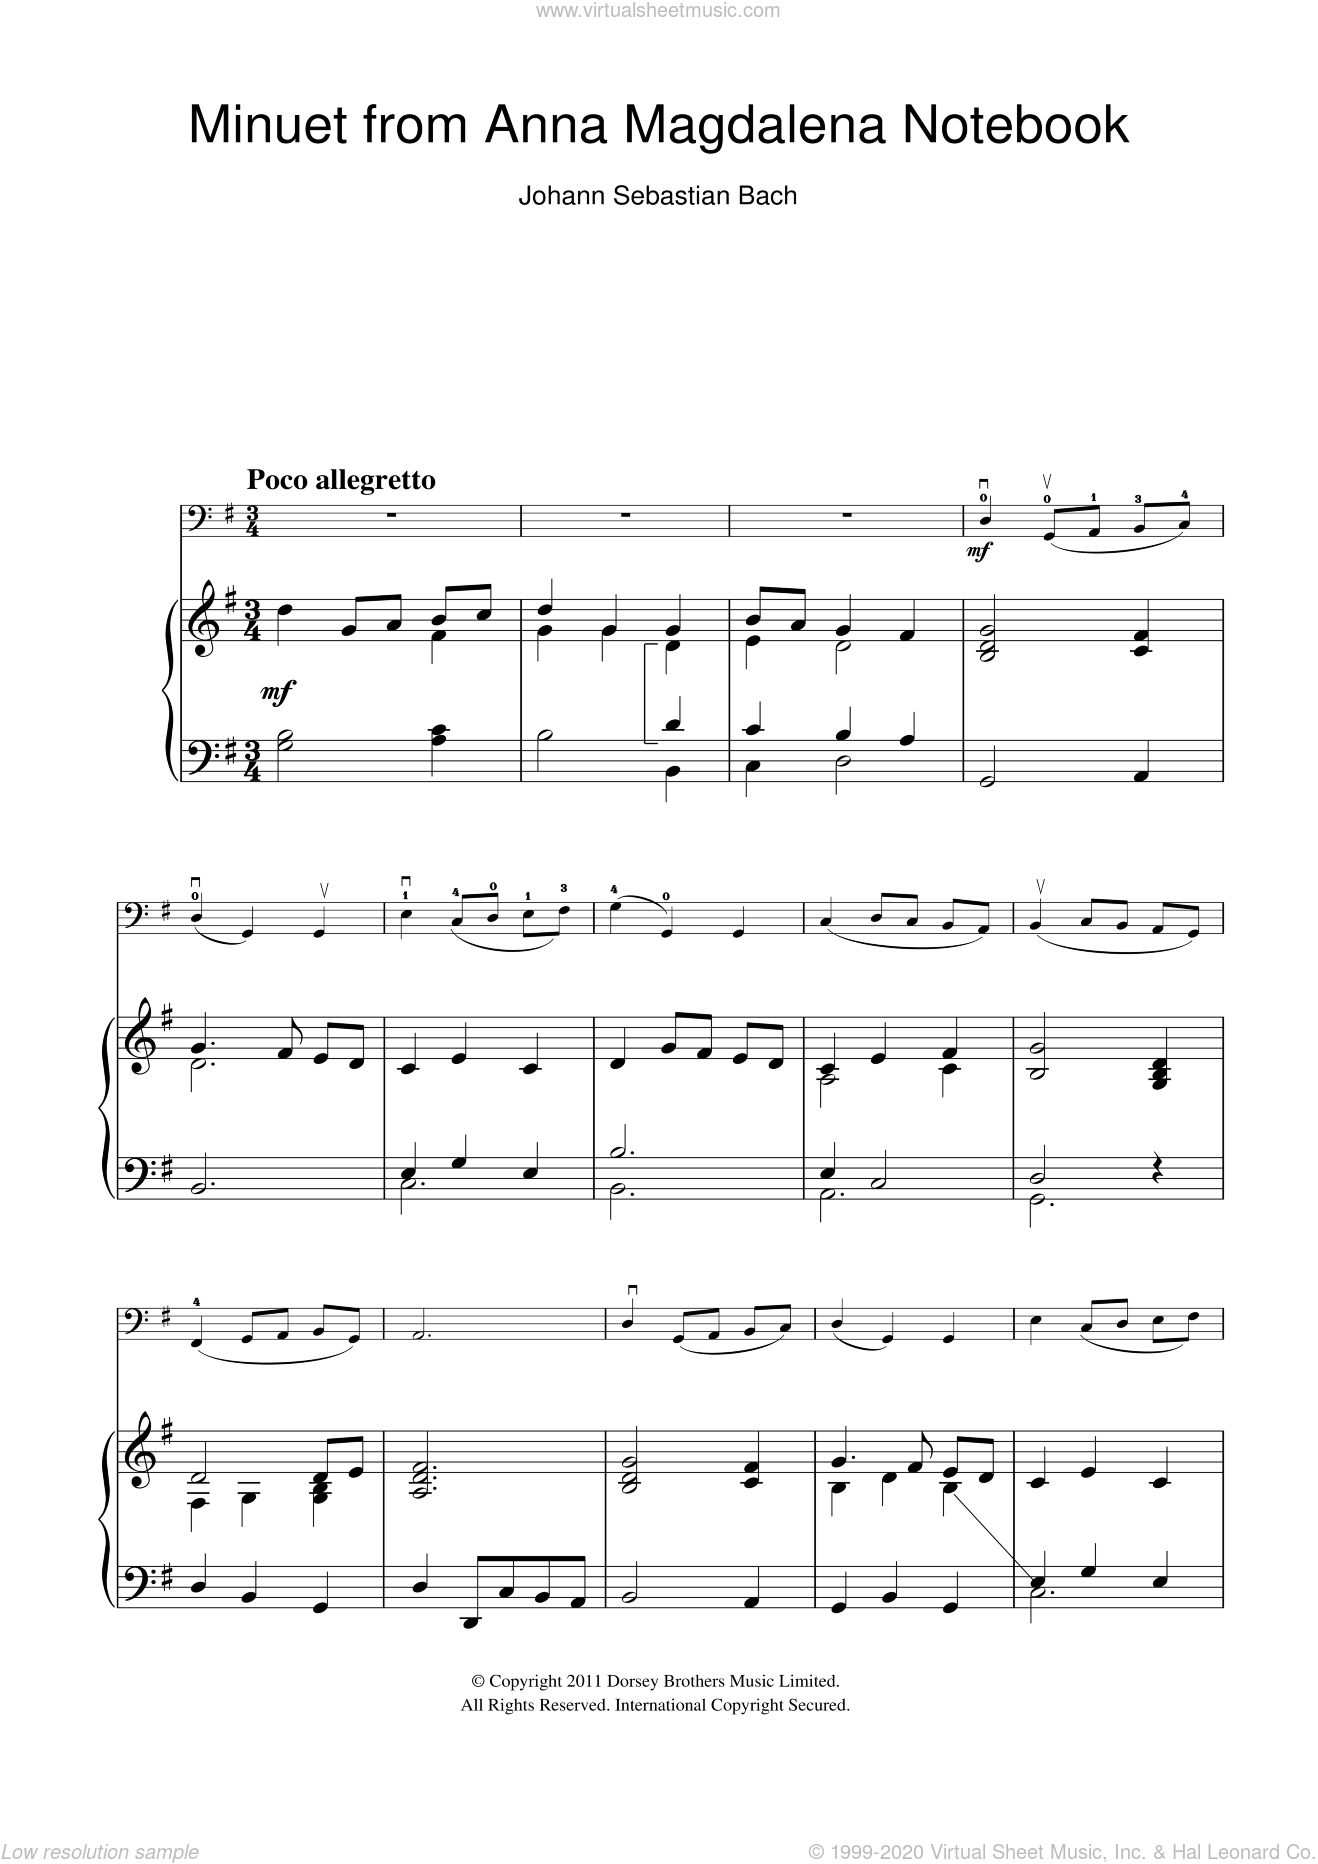 Minuet in G Major (from The Anna Magdalena Notebook) sheet music for cello solo by Johann Sebastian Bach, classical score, intermediate skill level